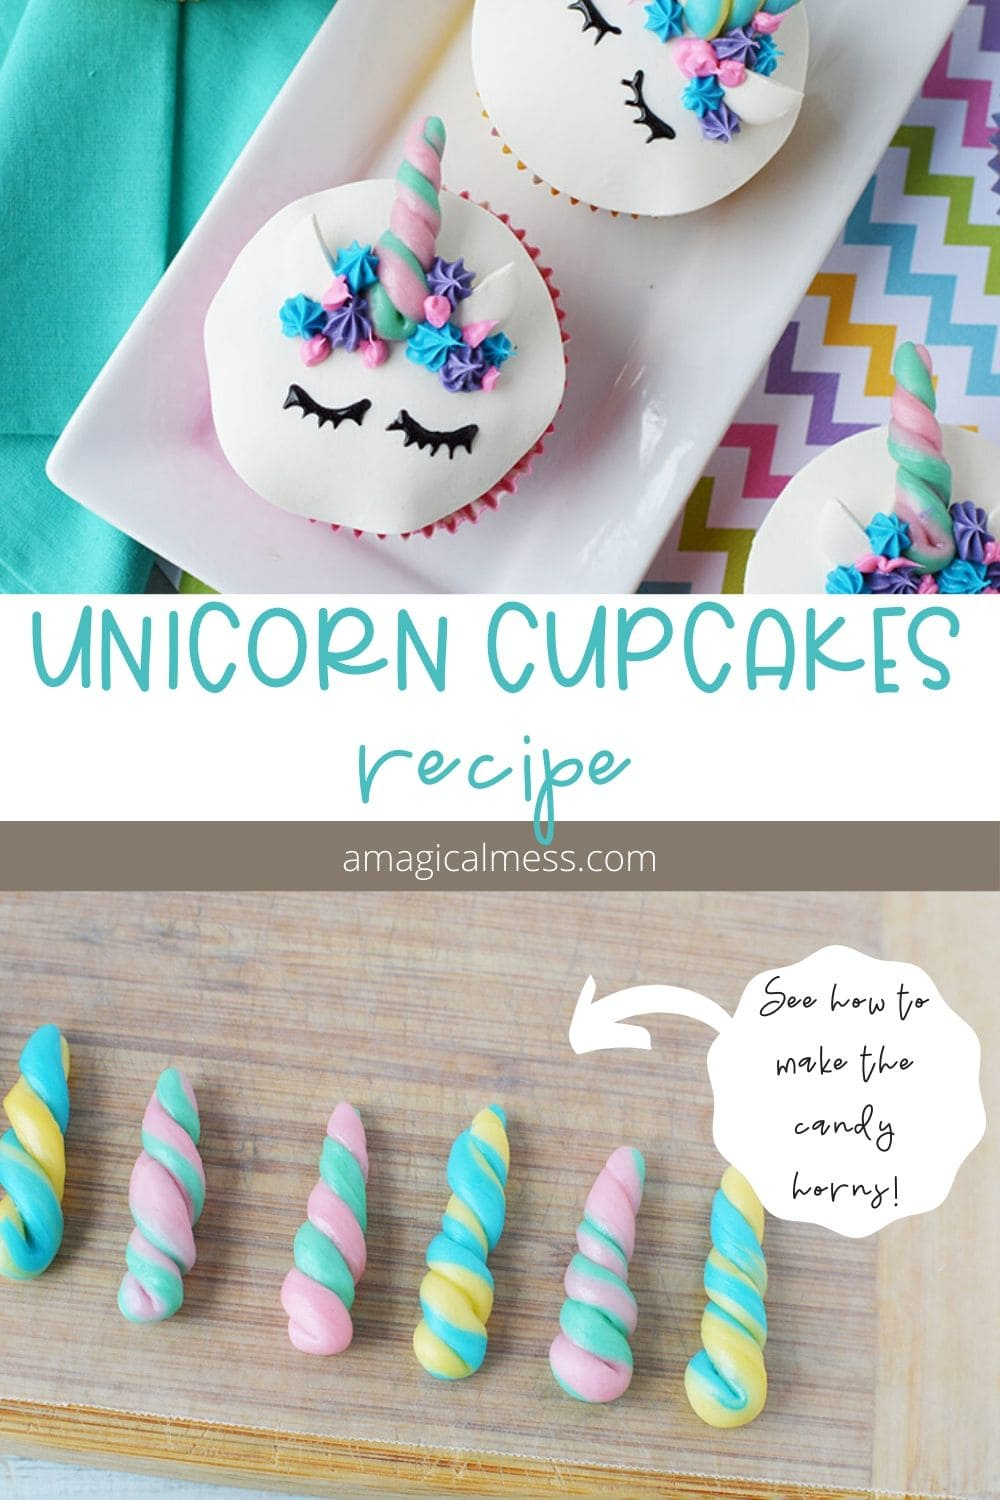 Unicorn cupcakes and candy horns